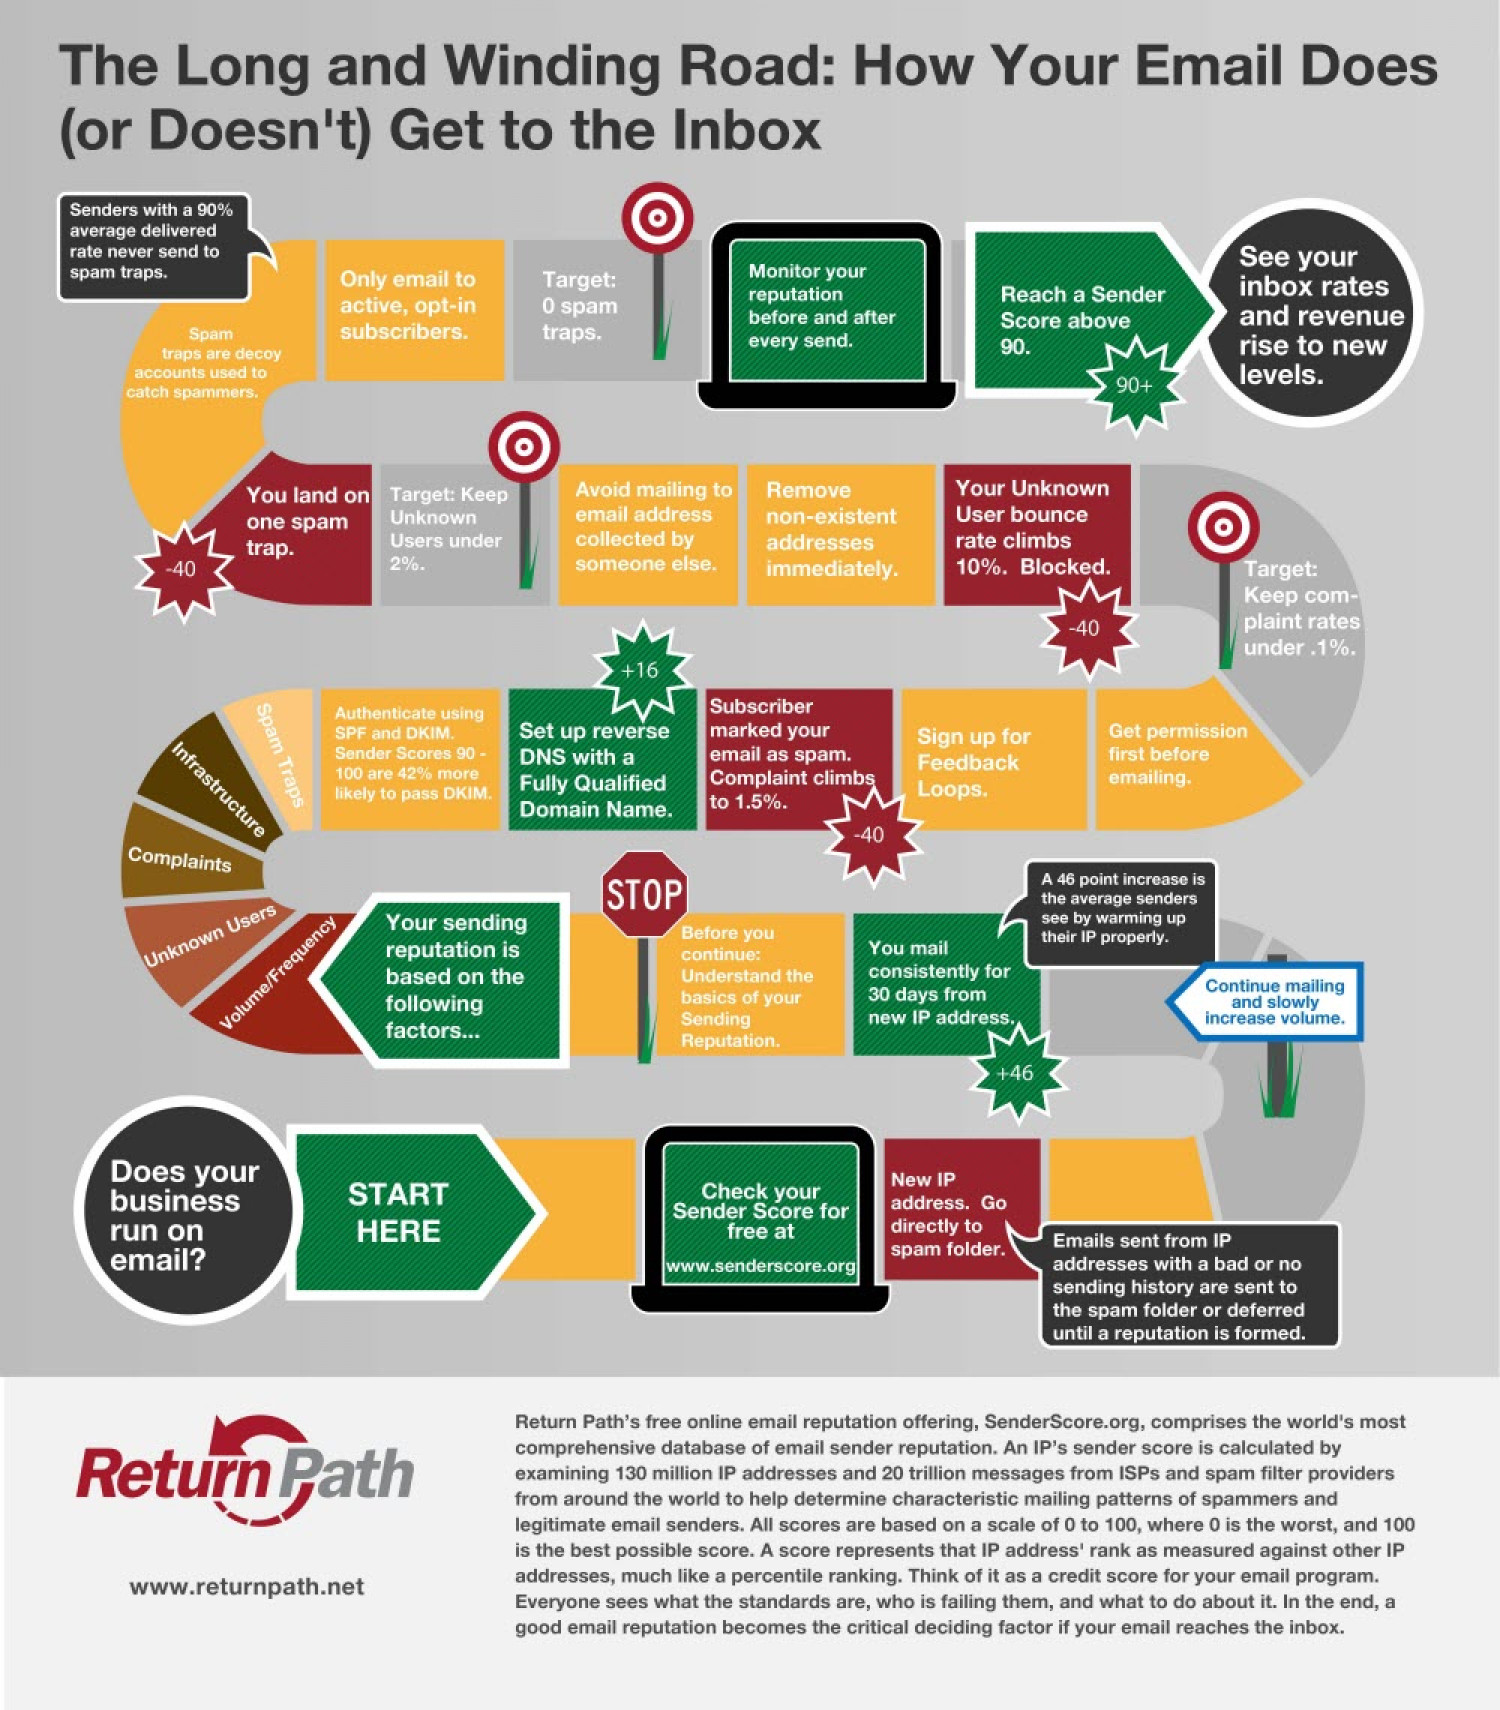 The Long and Winding Road: How Your Email Does (or Doesn't) Get to the Inbox Infographic